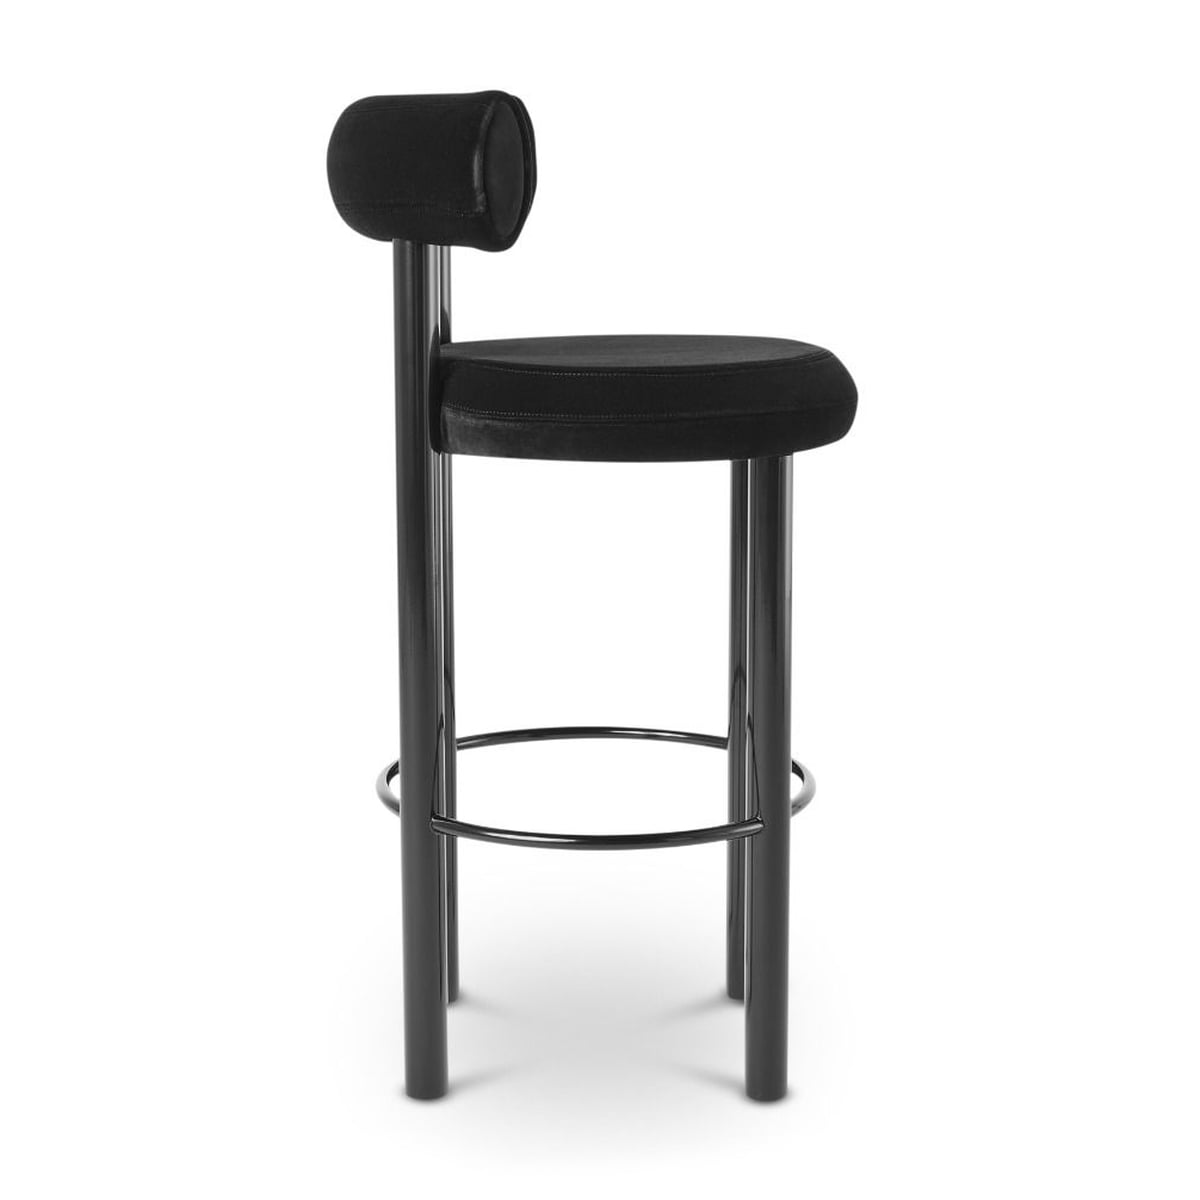 Wondrous Tom Dixon Fat Bar Stool Black Gmtry Best Dining Table And Chair Ideas Images Gmtryco